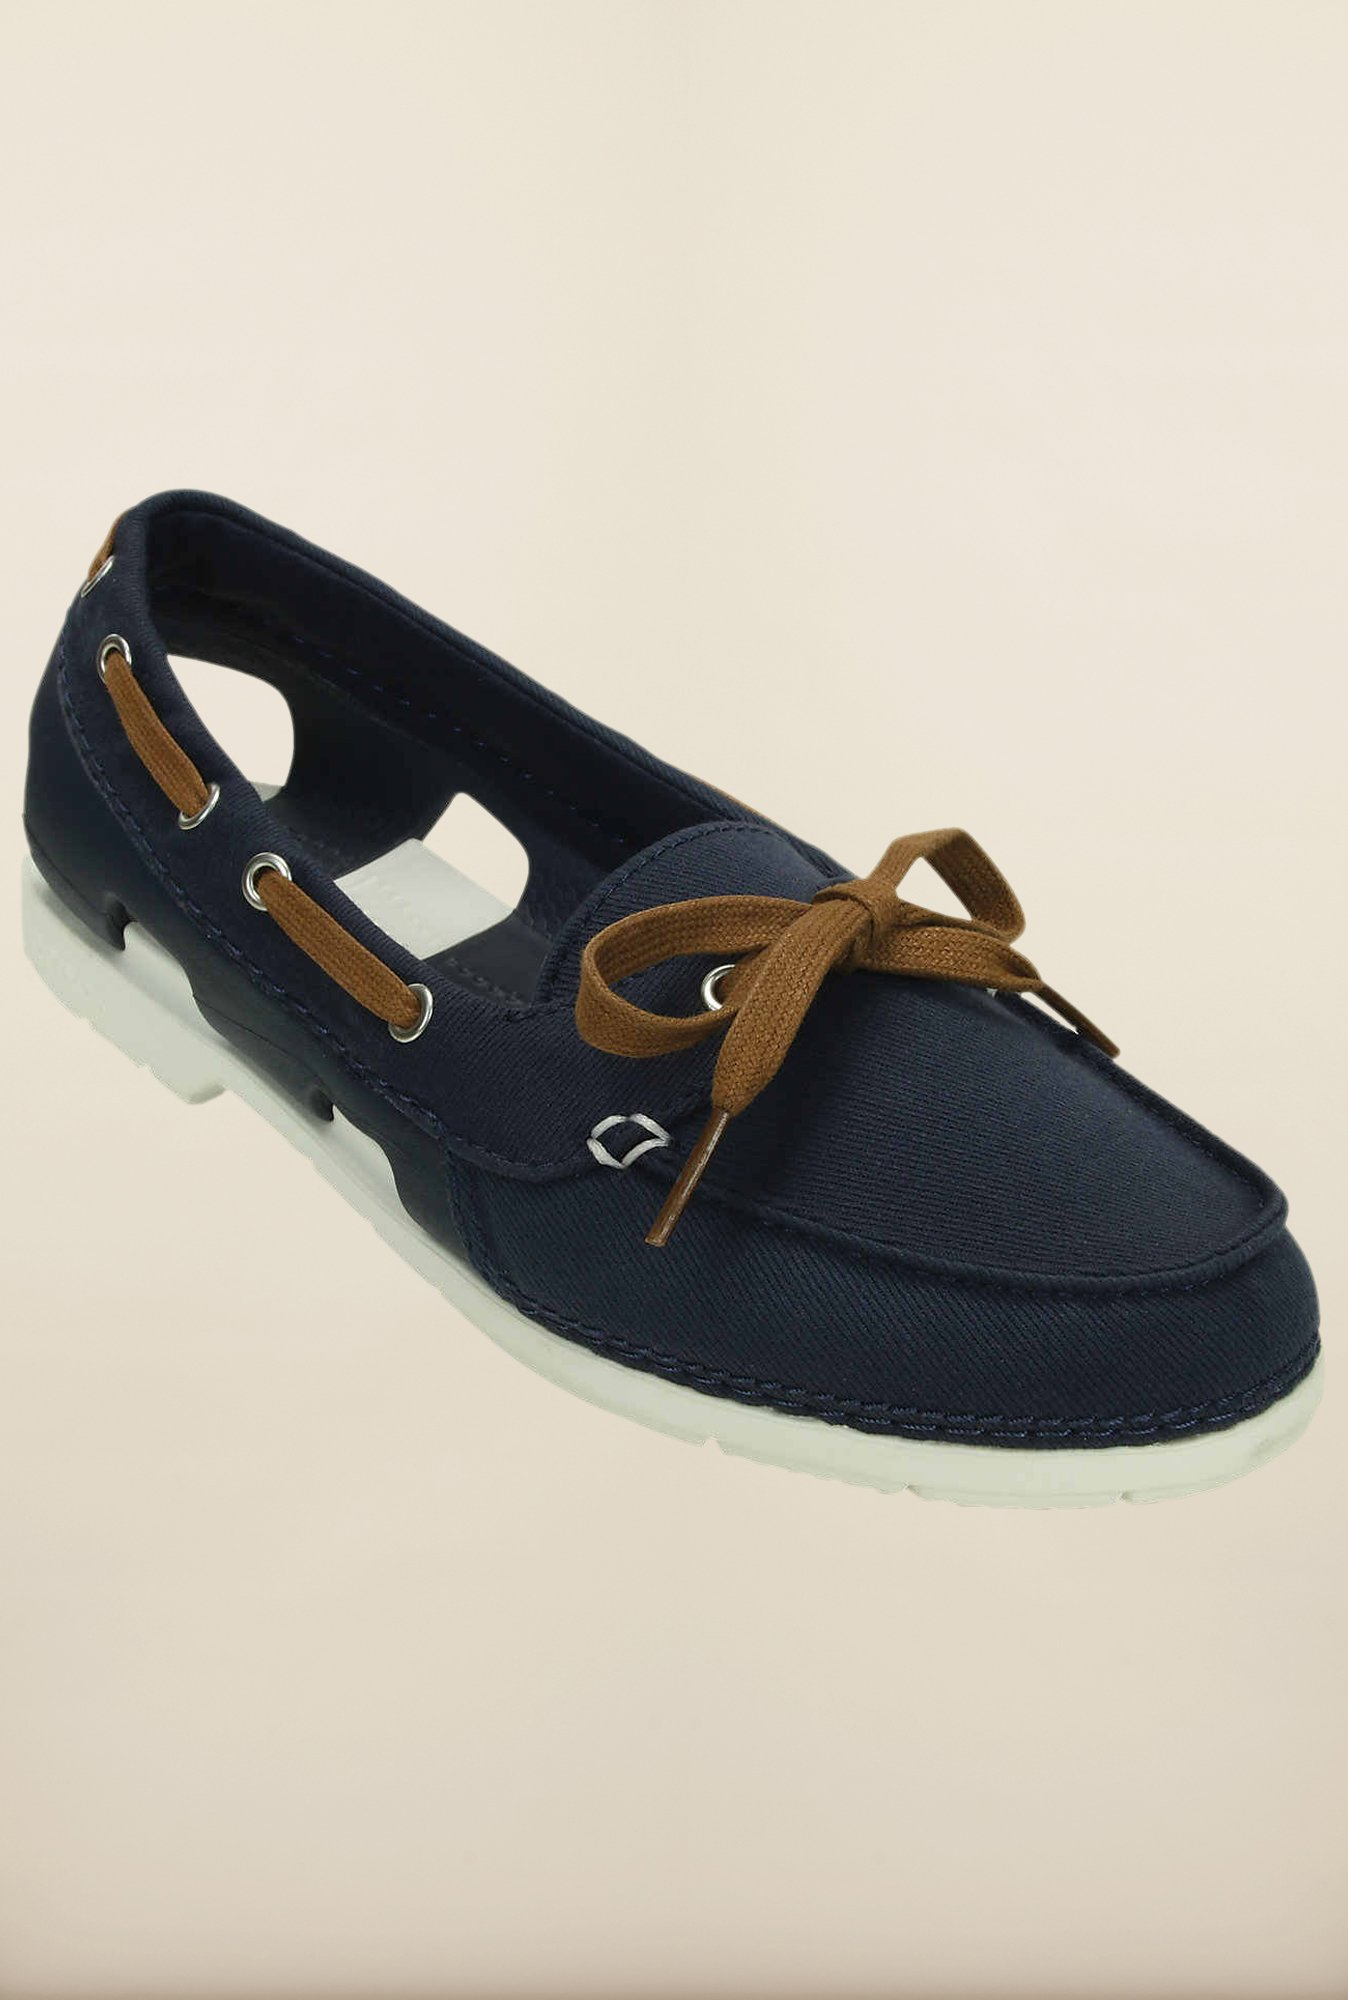 Crocs Beach Line Hybrid Navy & White Shoes